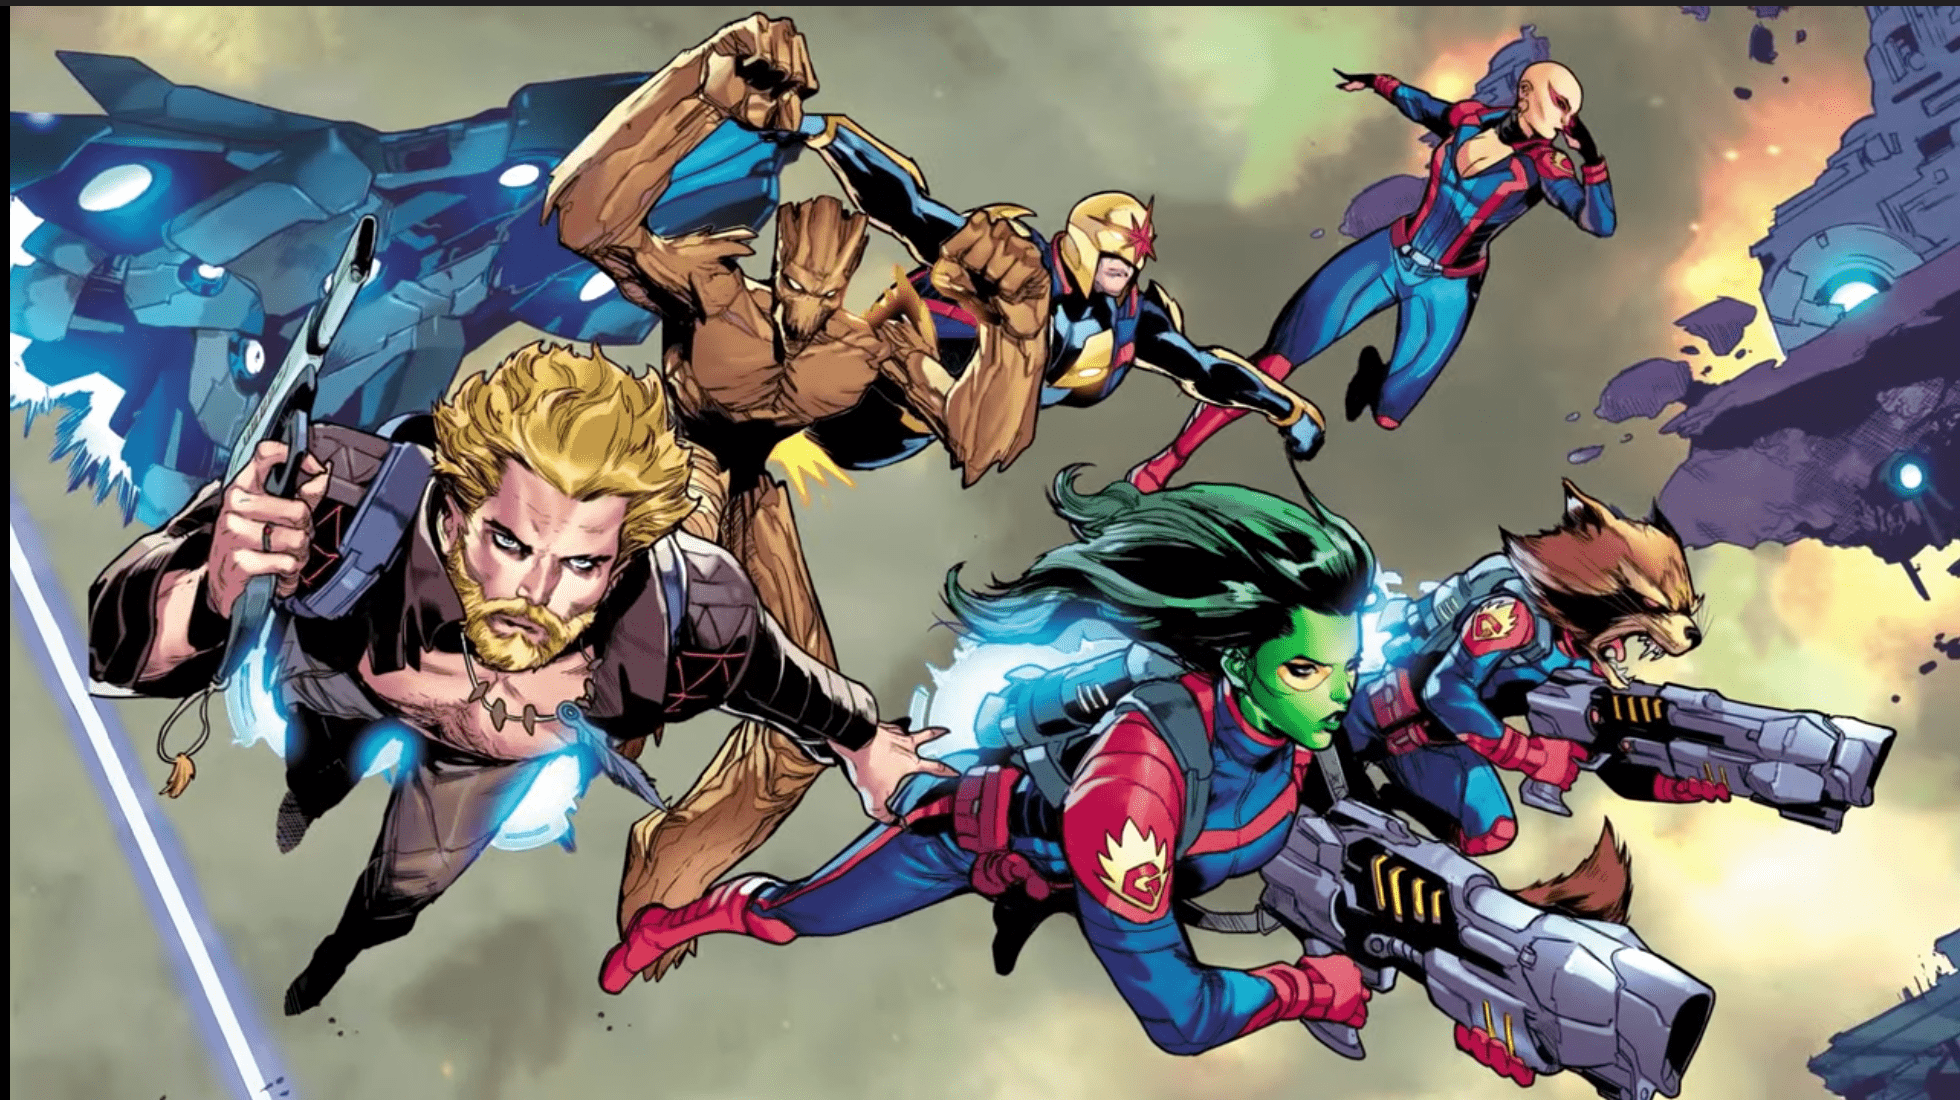 Marvel drops 'Guardians of the Galaxy' #13 trailer